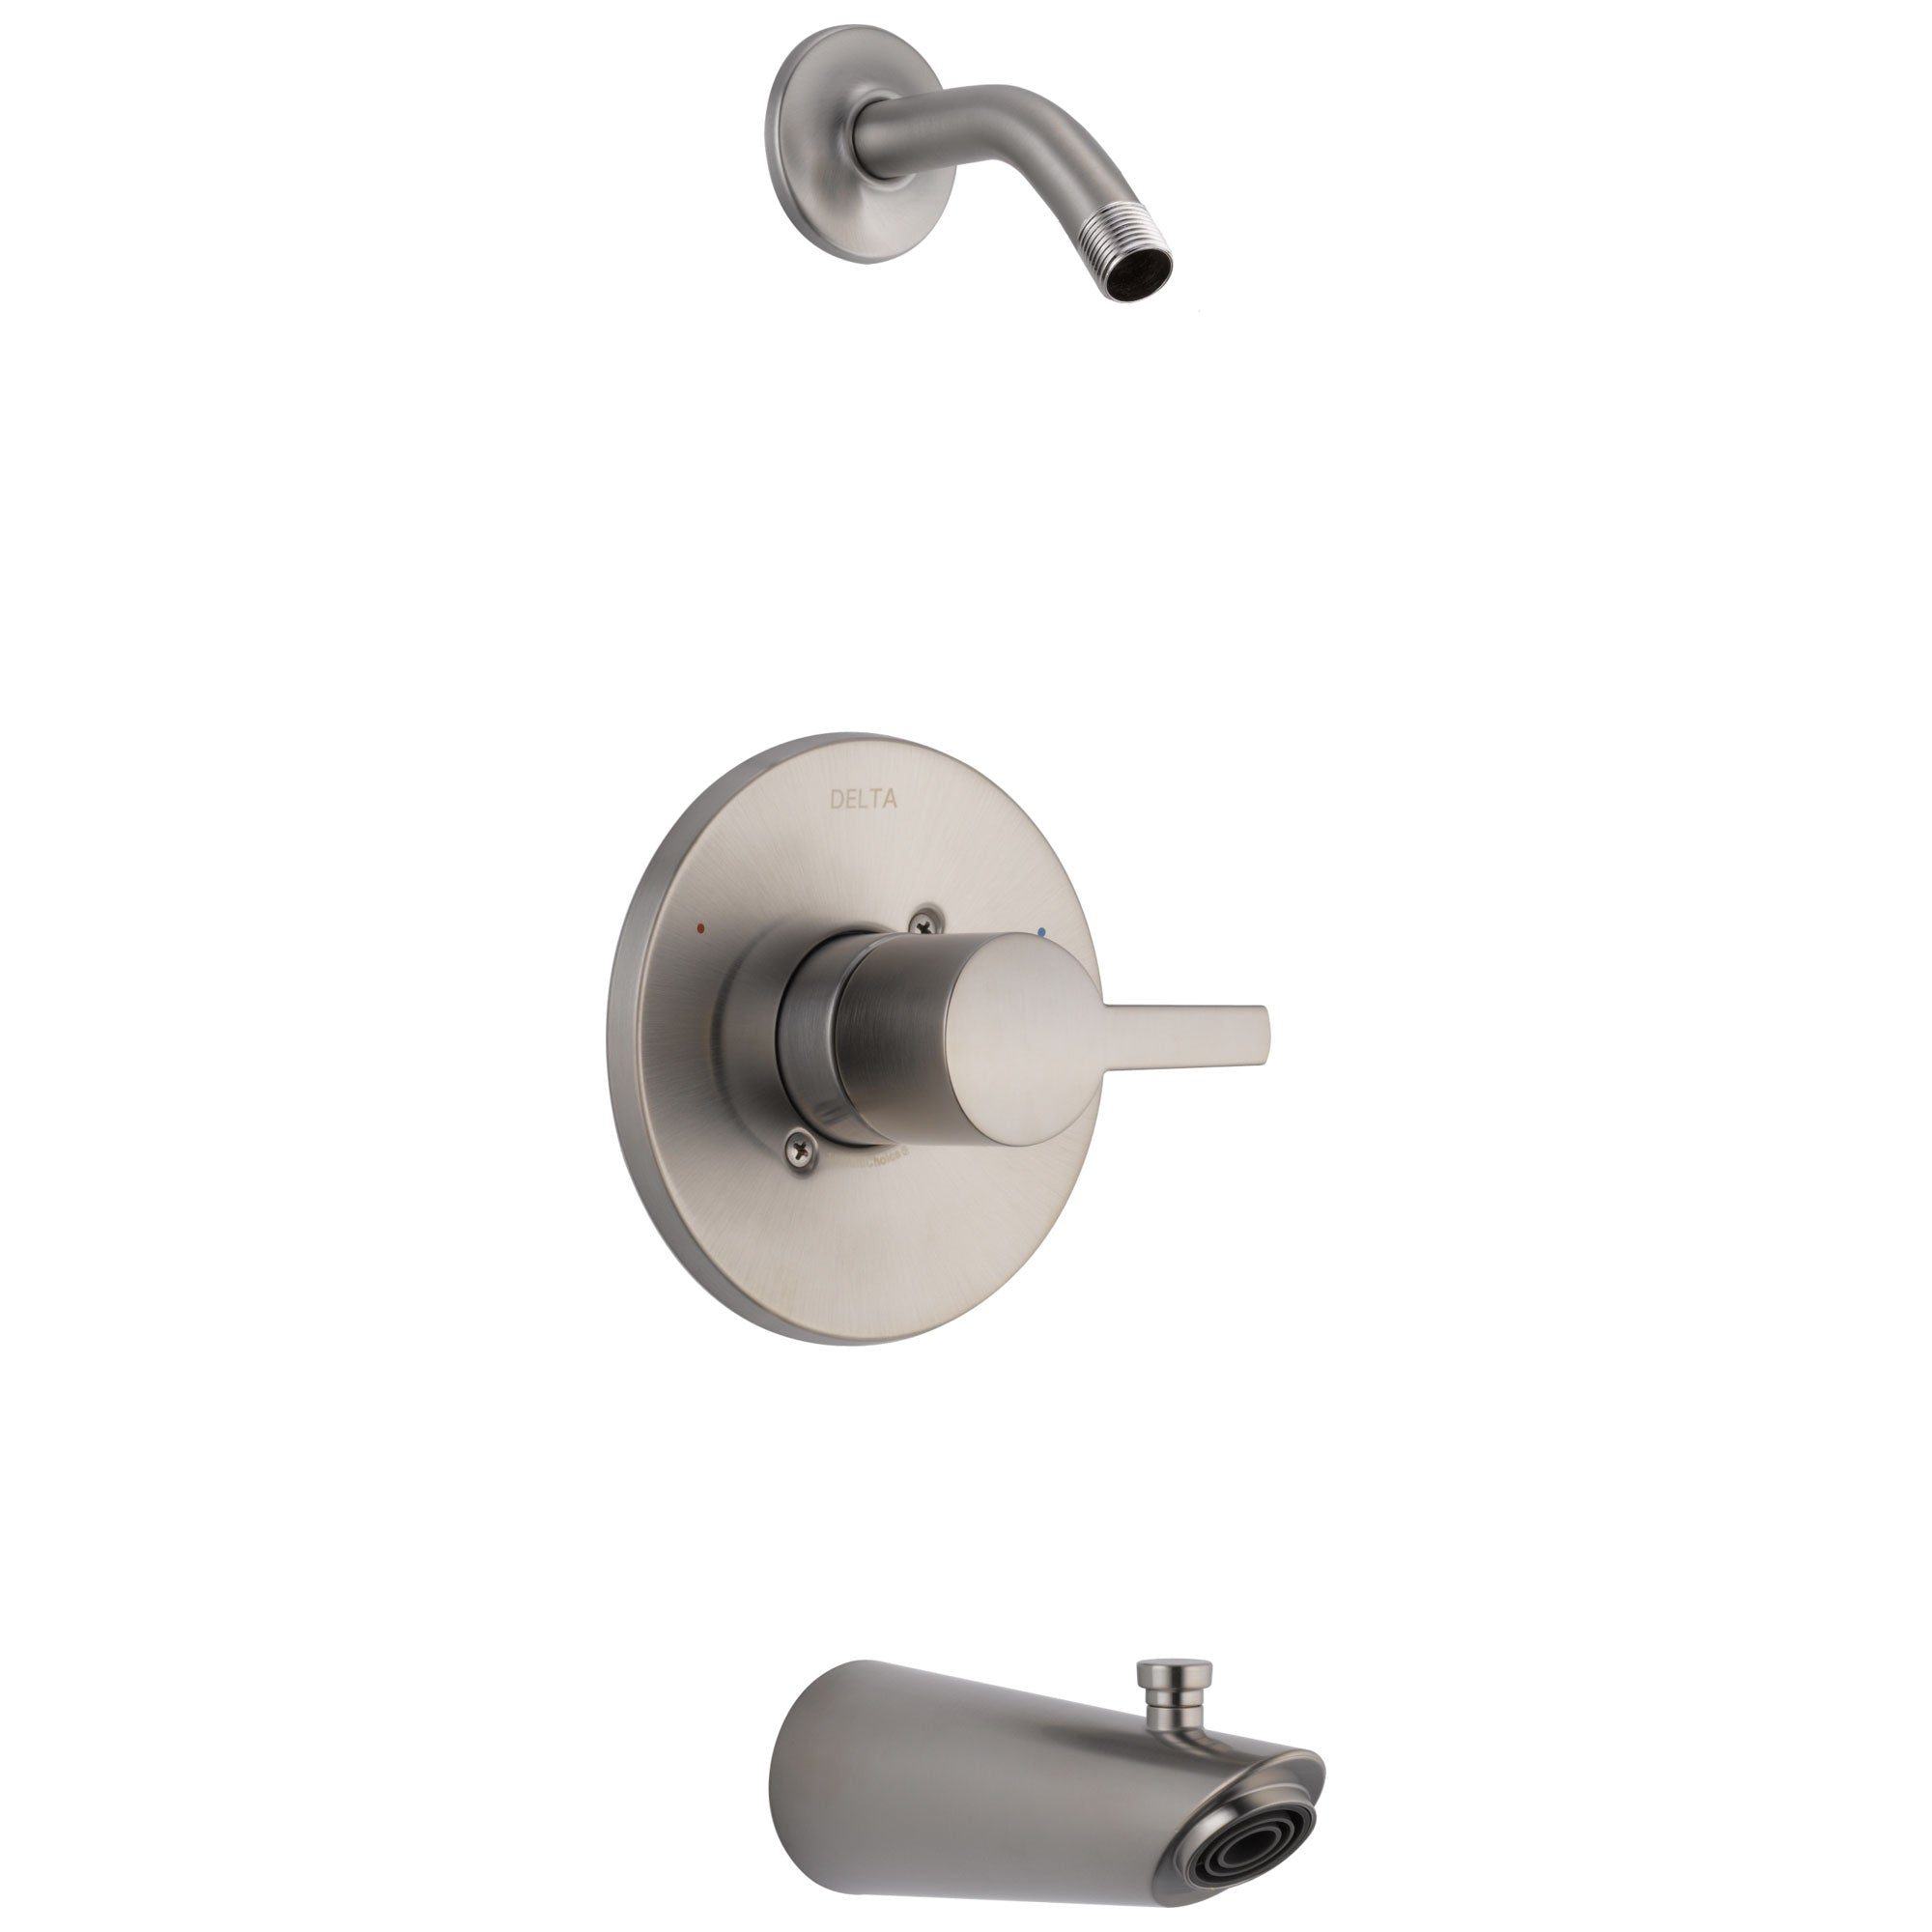 Delta Compel Collection Stainless Steel Finish Monitor 14 Modern Tub & Shower Combination Faucet Trim - Less Showerhead Includes Valve with Stops D2394V